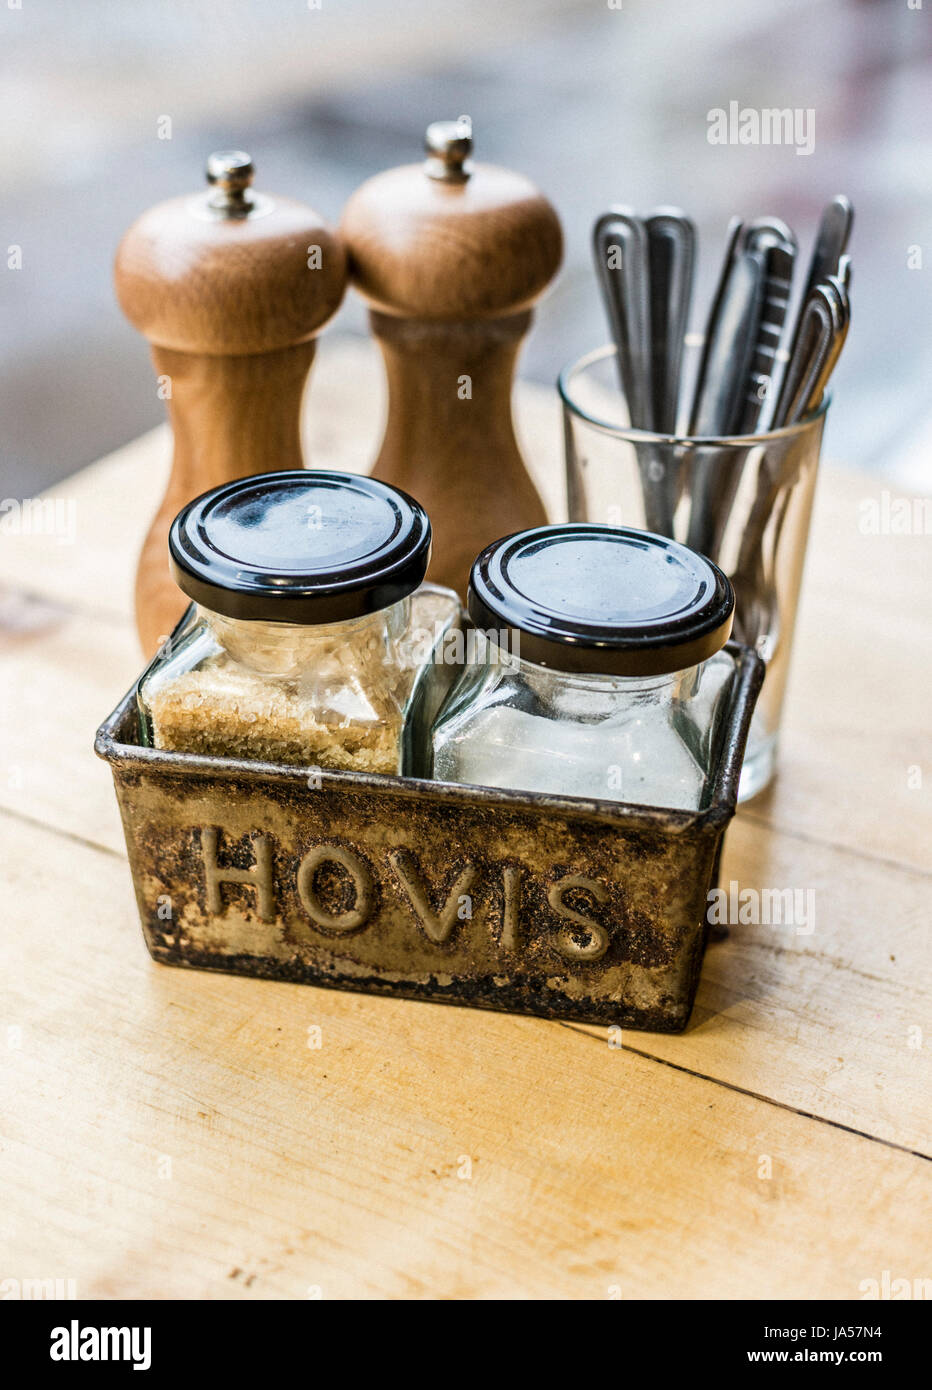 Condiments arranged using a old loaf tin - Stock Image